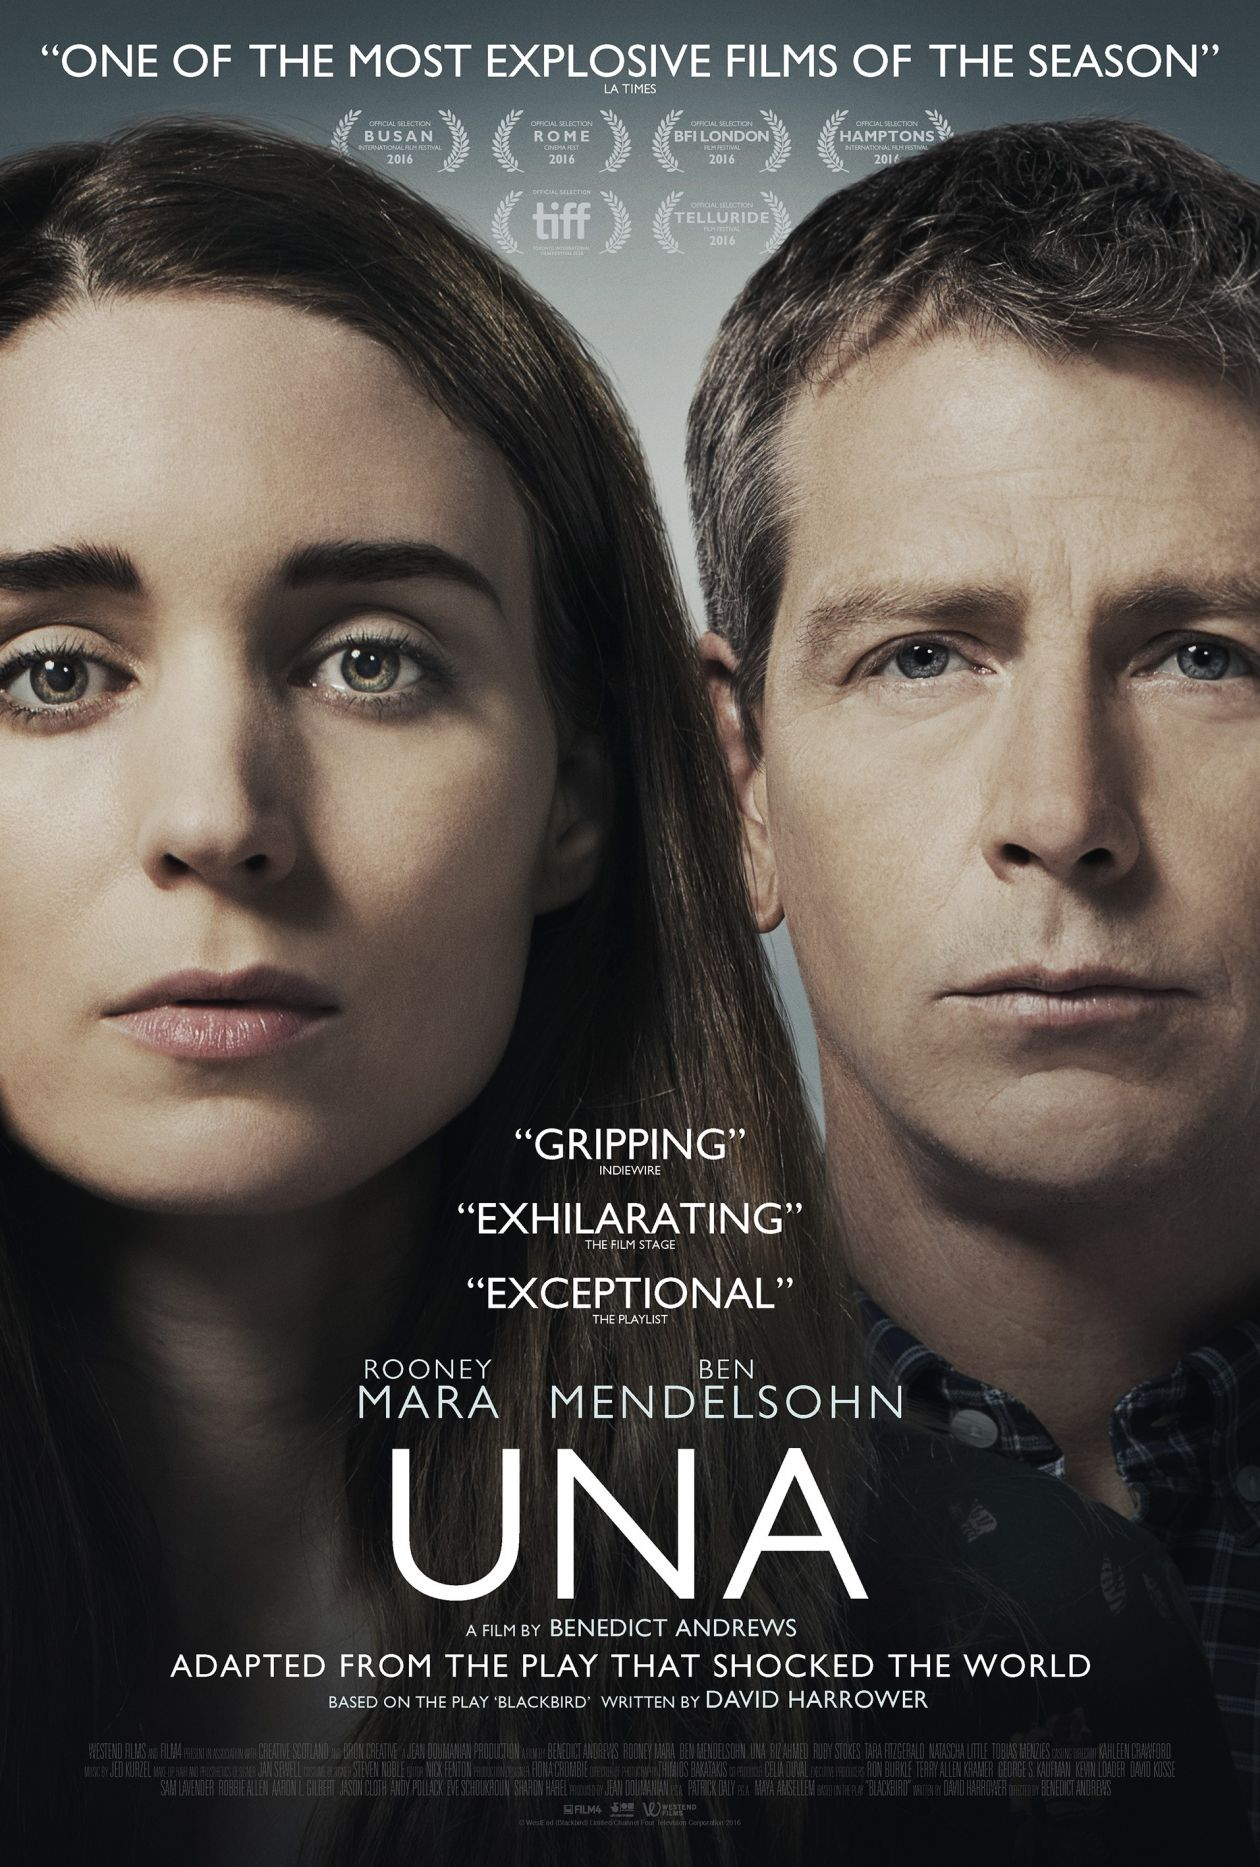 Rooney Mara actress | UNA | Benedict Andrews 2016 Movie Poster Affiche film